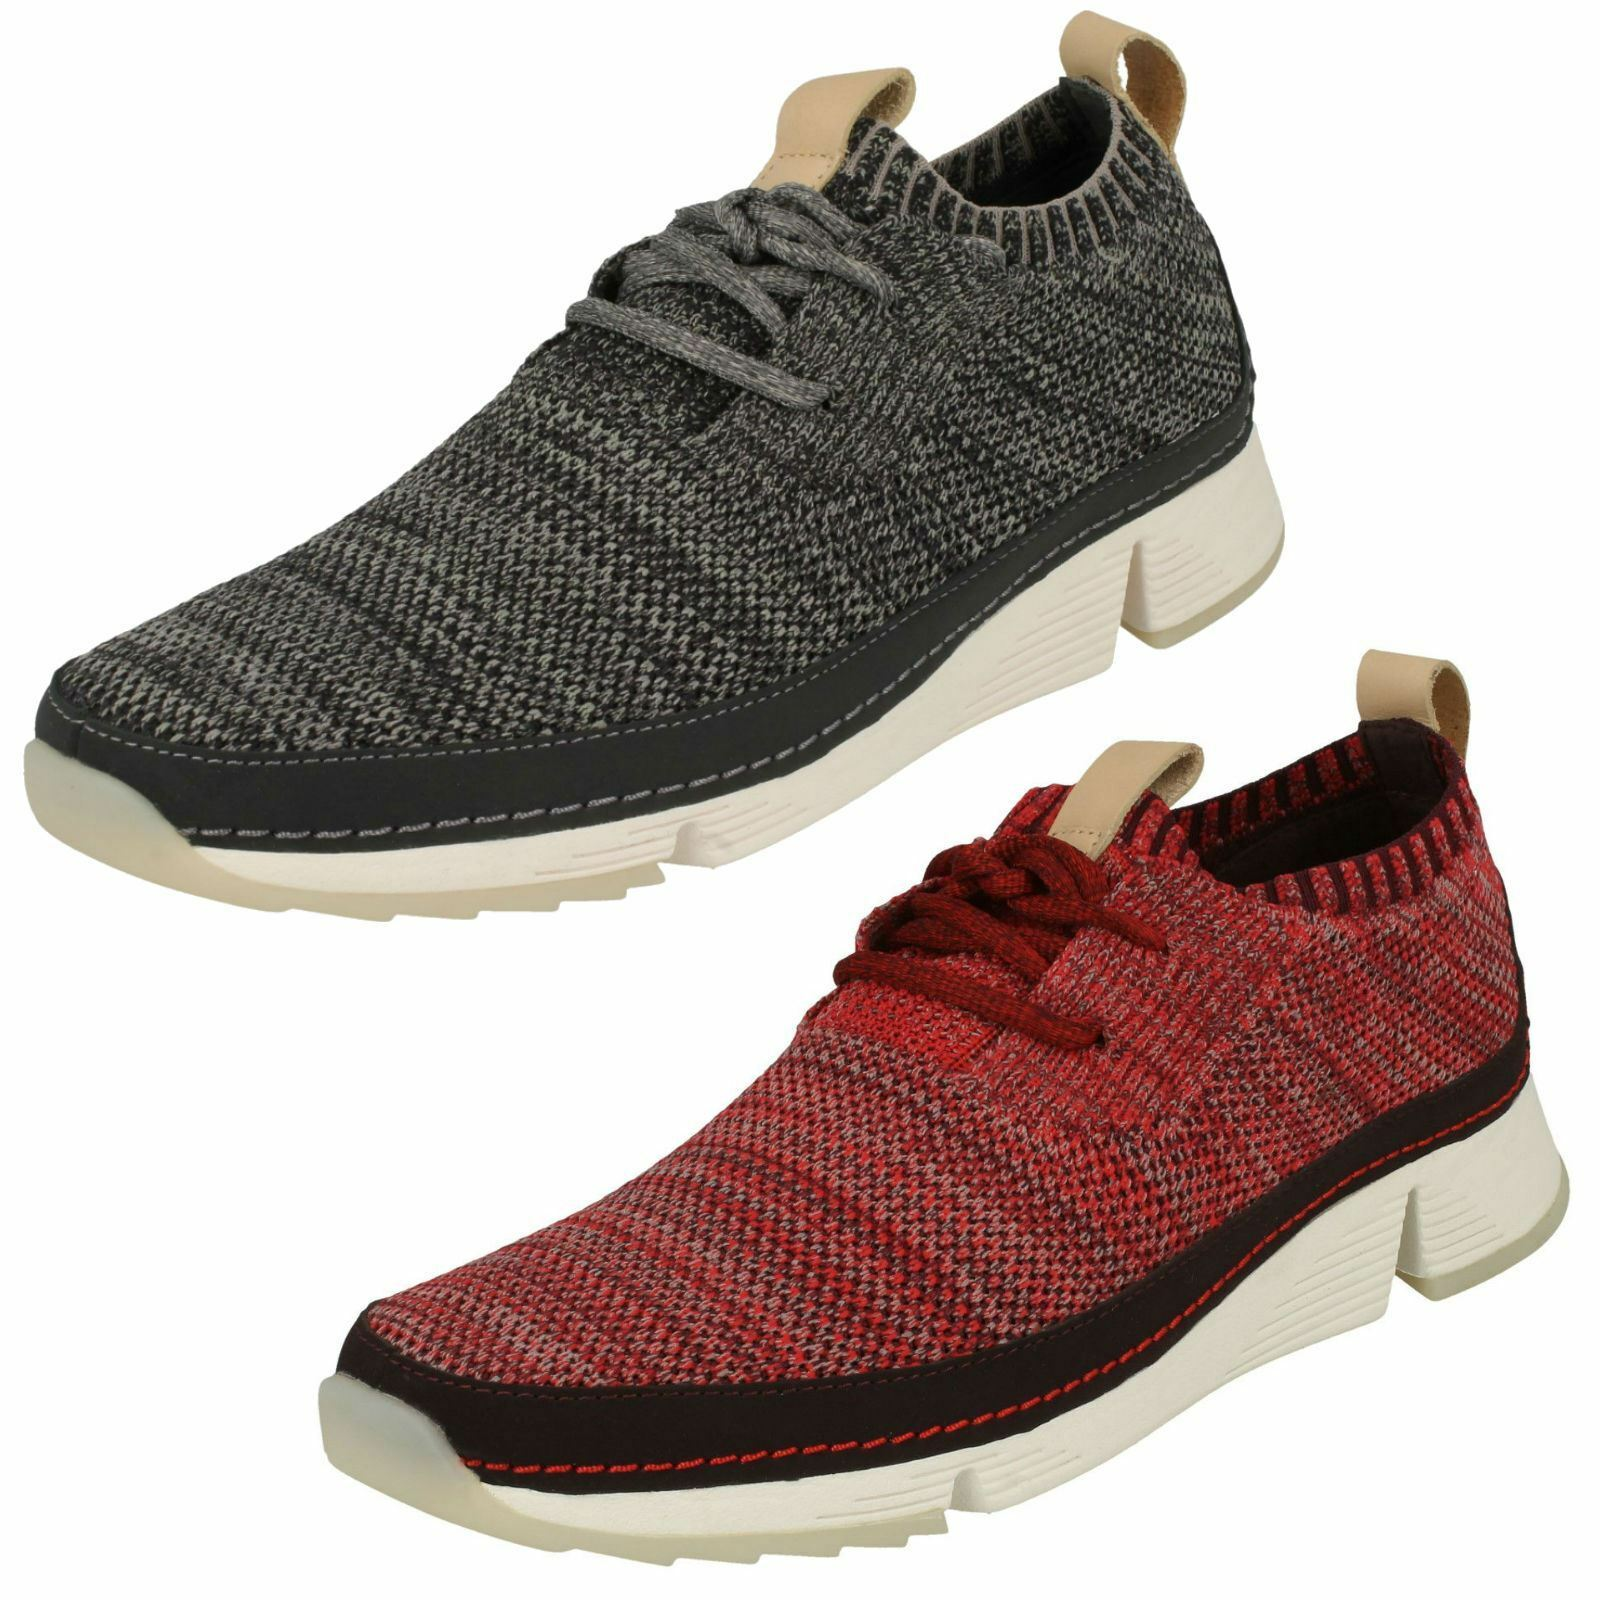 Ladies Clarks Sports Trainers - Tri Native